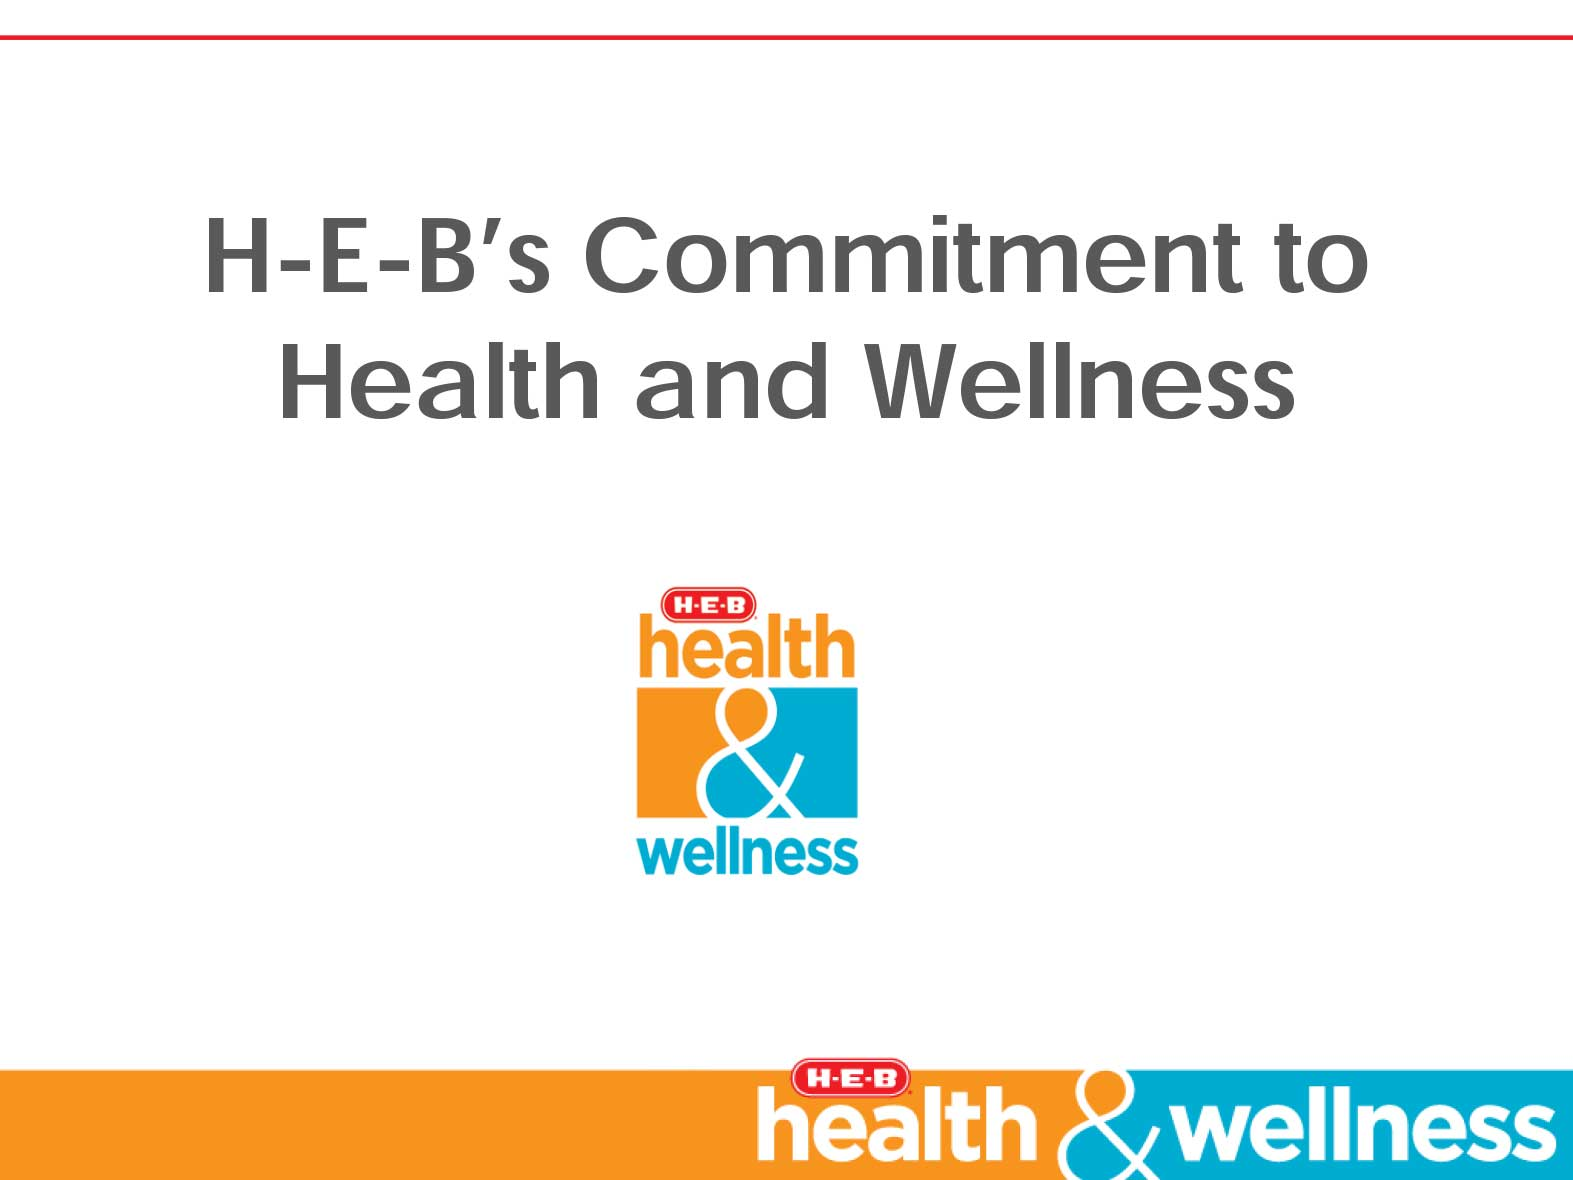 H-E-B's Commitment to Health and Wellness